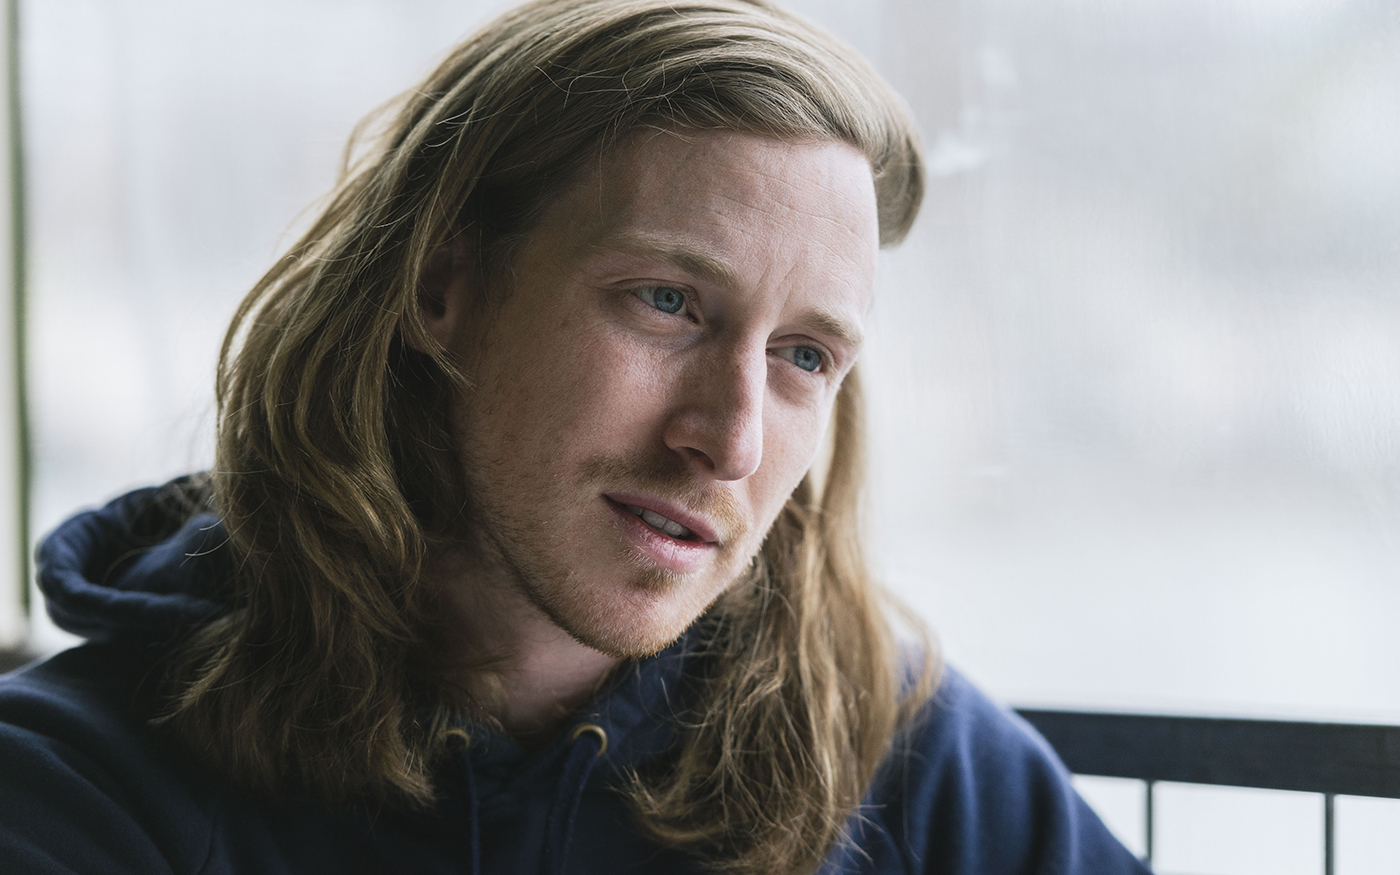 Asher Roth interview 2016 3